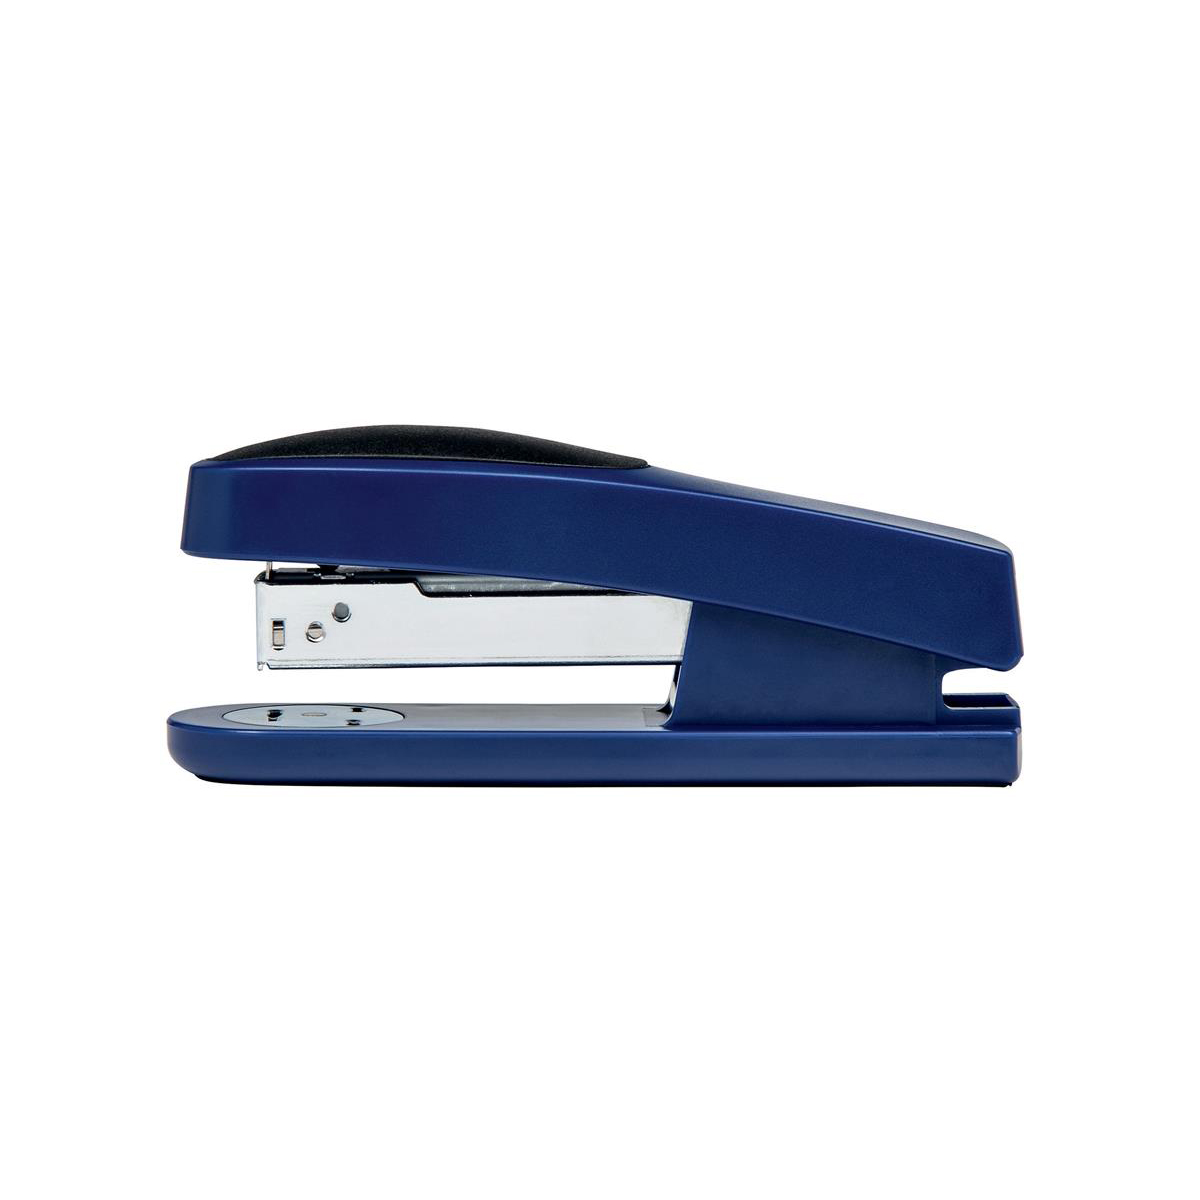 Long Arm Staplers 5 Star Office Half Strip Stapler Top Loading Rubber Base 25 Sheet Capacity Takes 26/6 Staples Blue